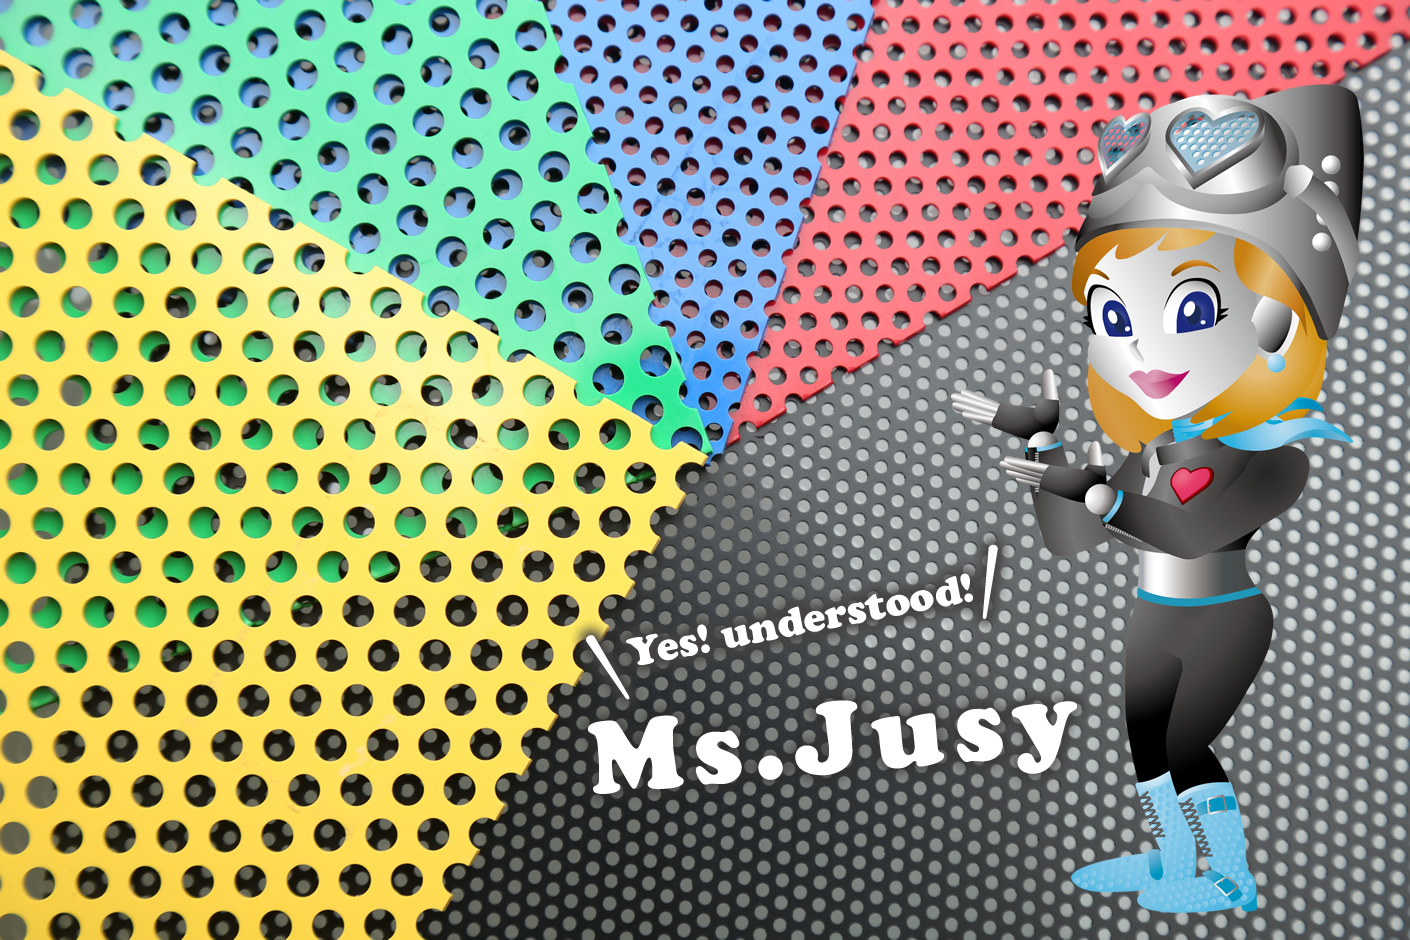 ms-jusy